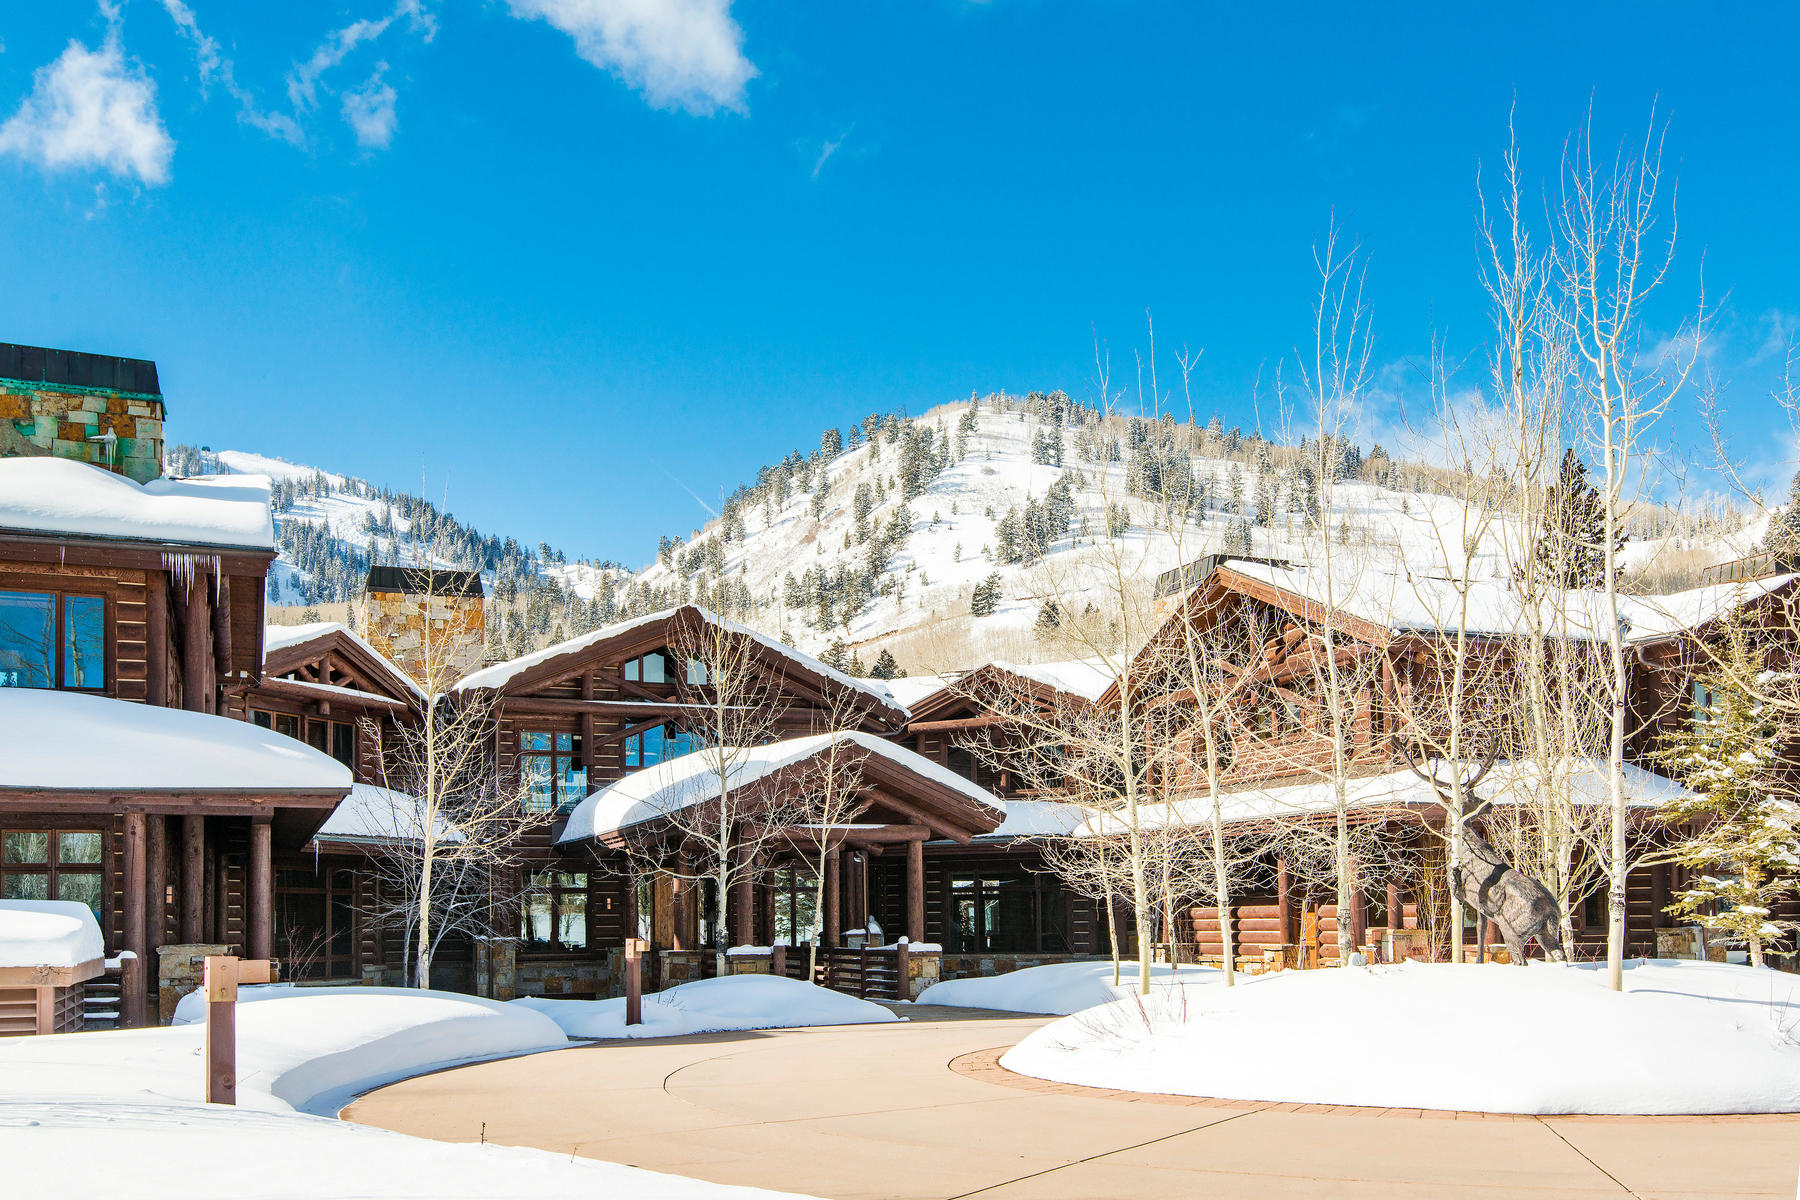 Maison unifamiliale pour l Vente à The Ultimate Ski-In / Ski-Out Estate 69 White Pine Canyon St. Lot 75, Park City, Utah, 84060 États-Unis